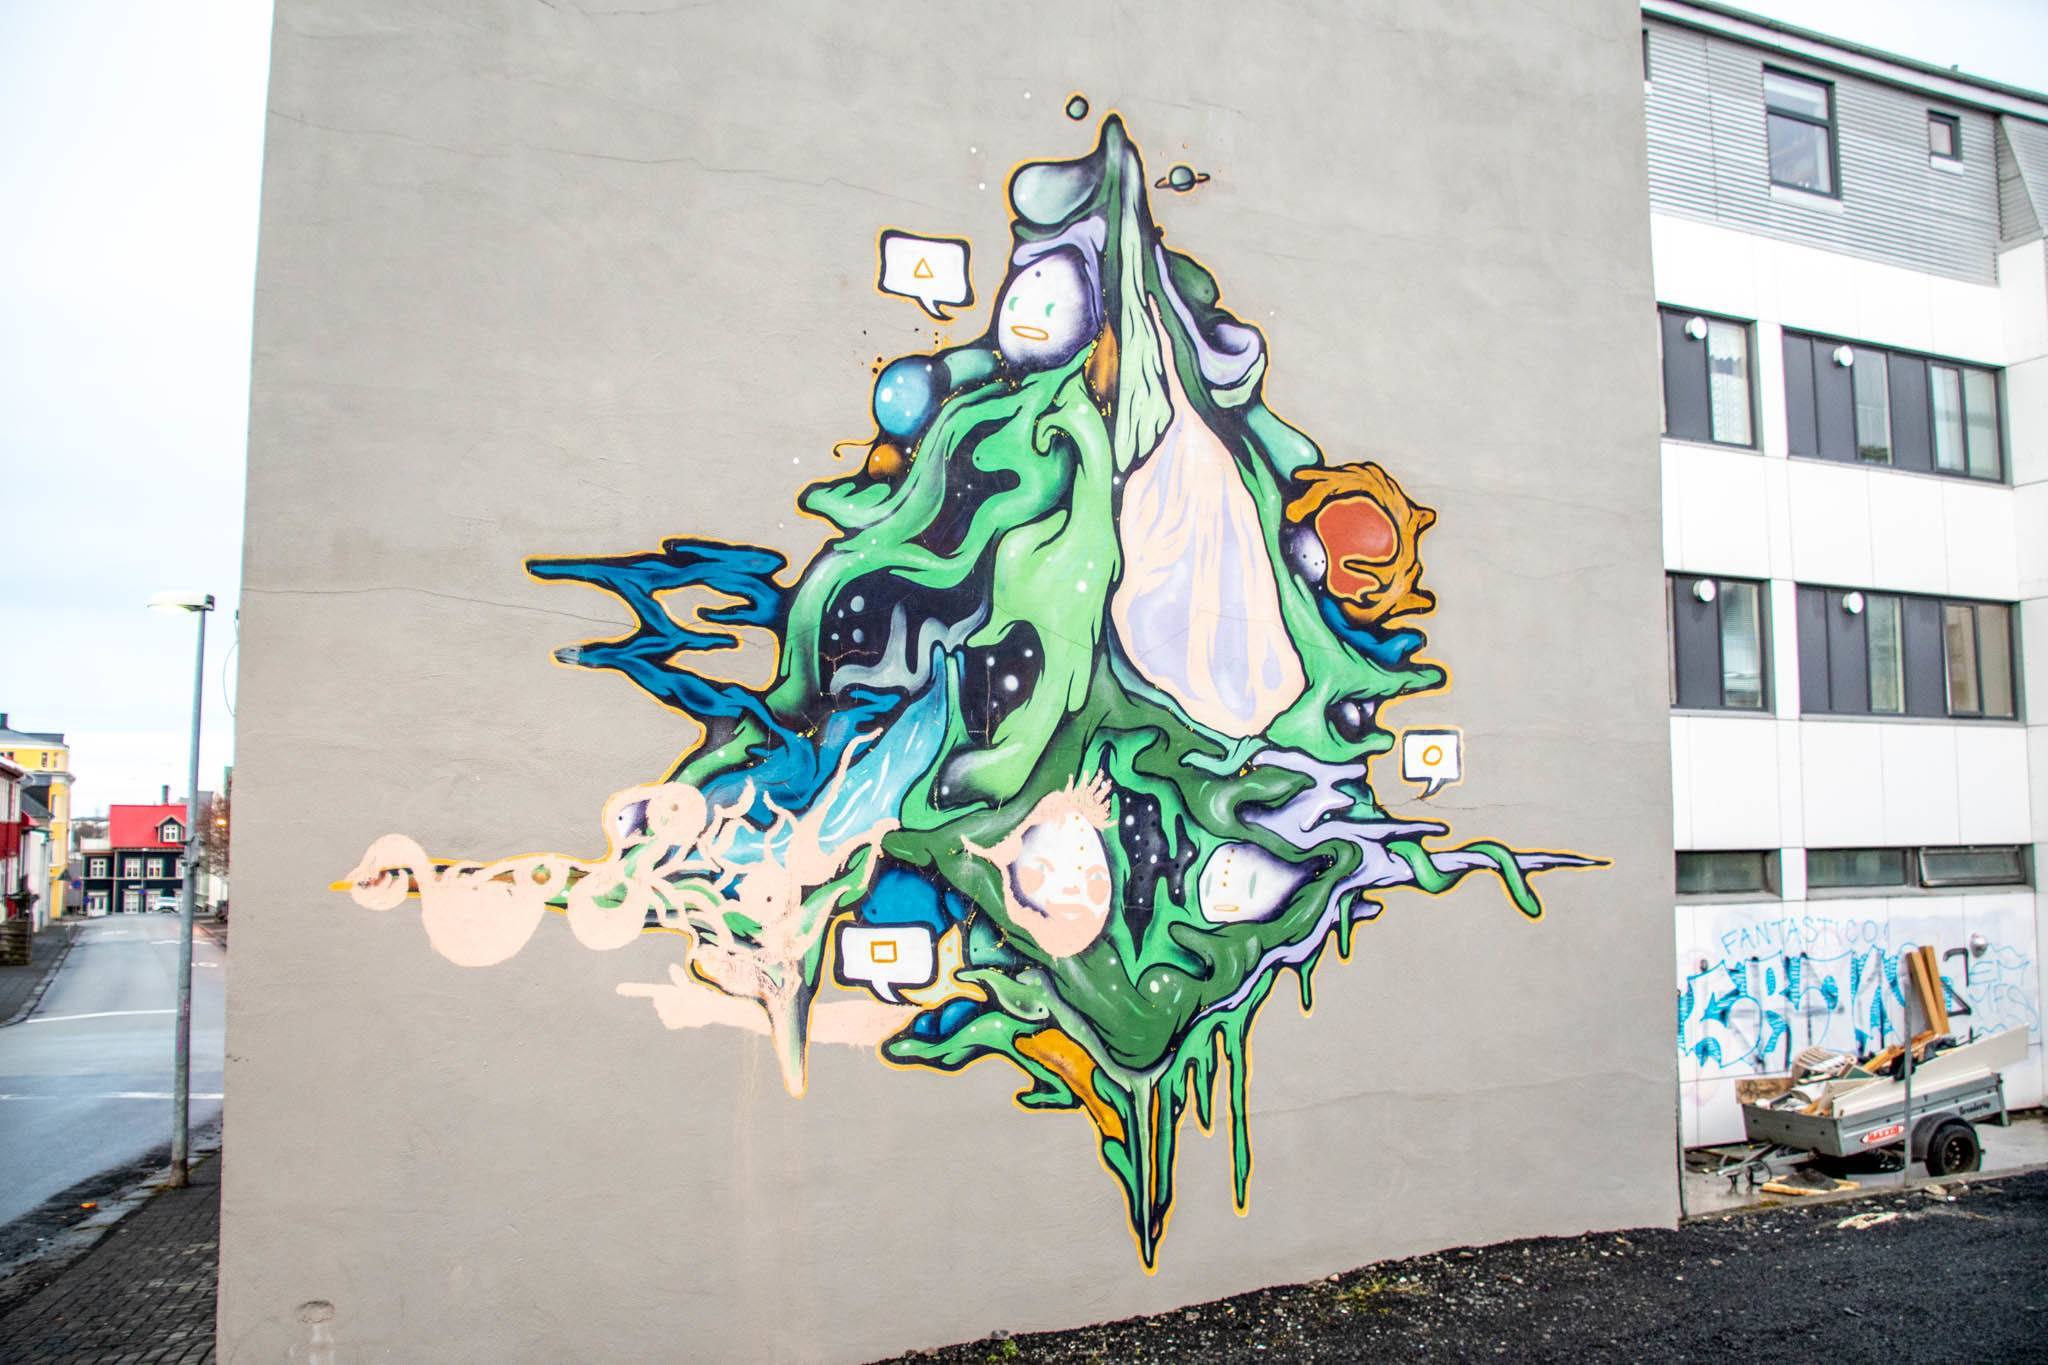 Street art murals are subject to change and frequent destruction.